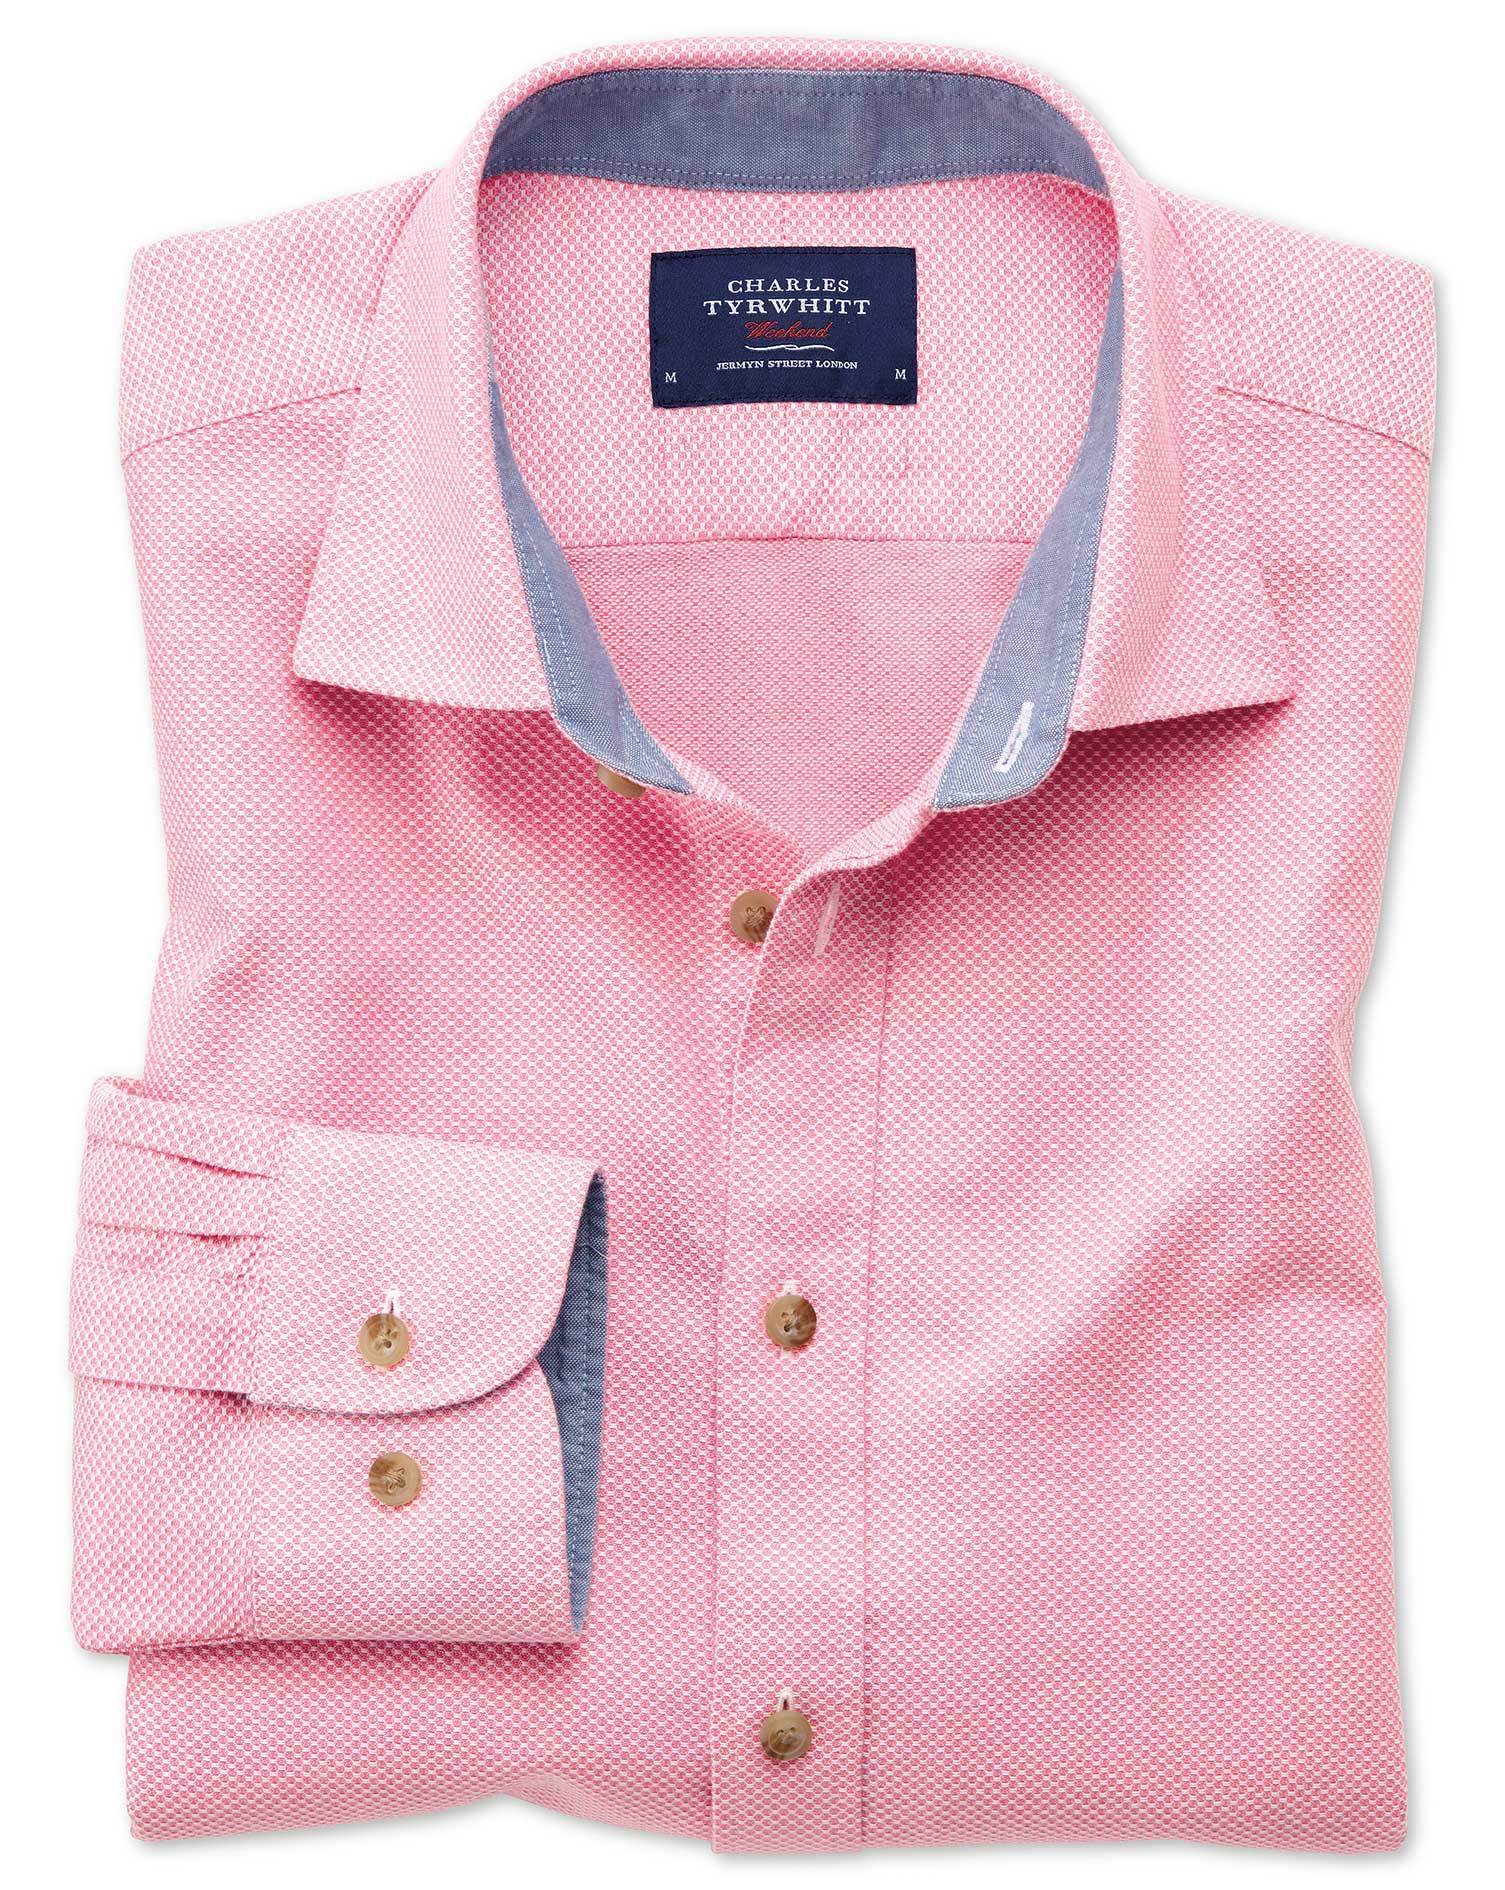 Slim Fit Washed Textured Pink Cotton Shirt Single Cuff Size XS by Charles Tyrwhitt